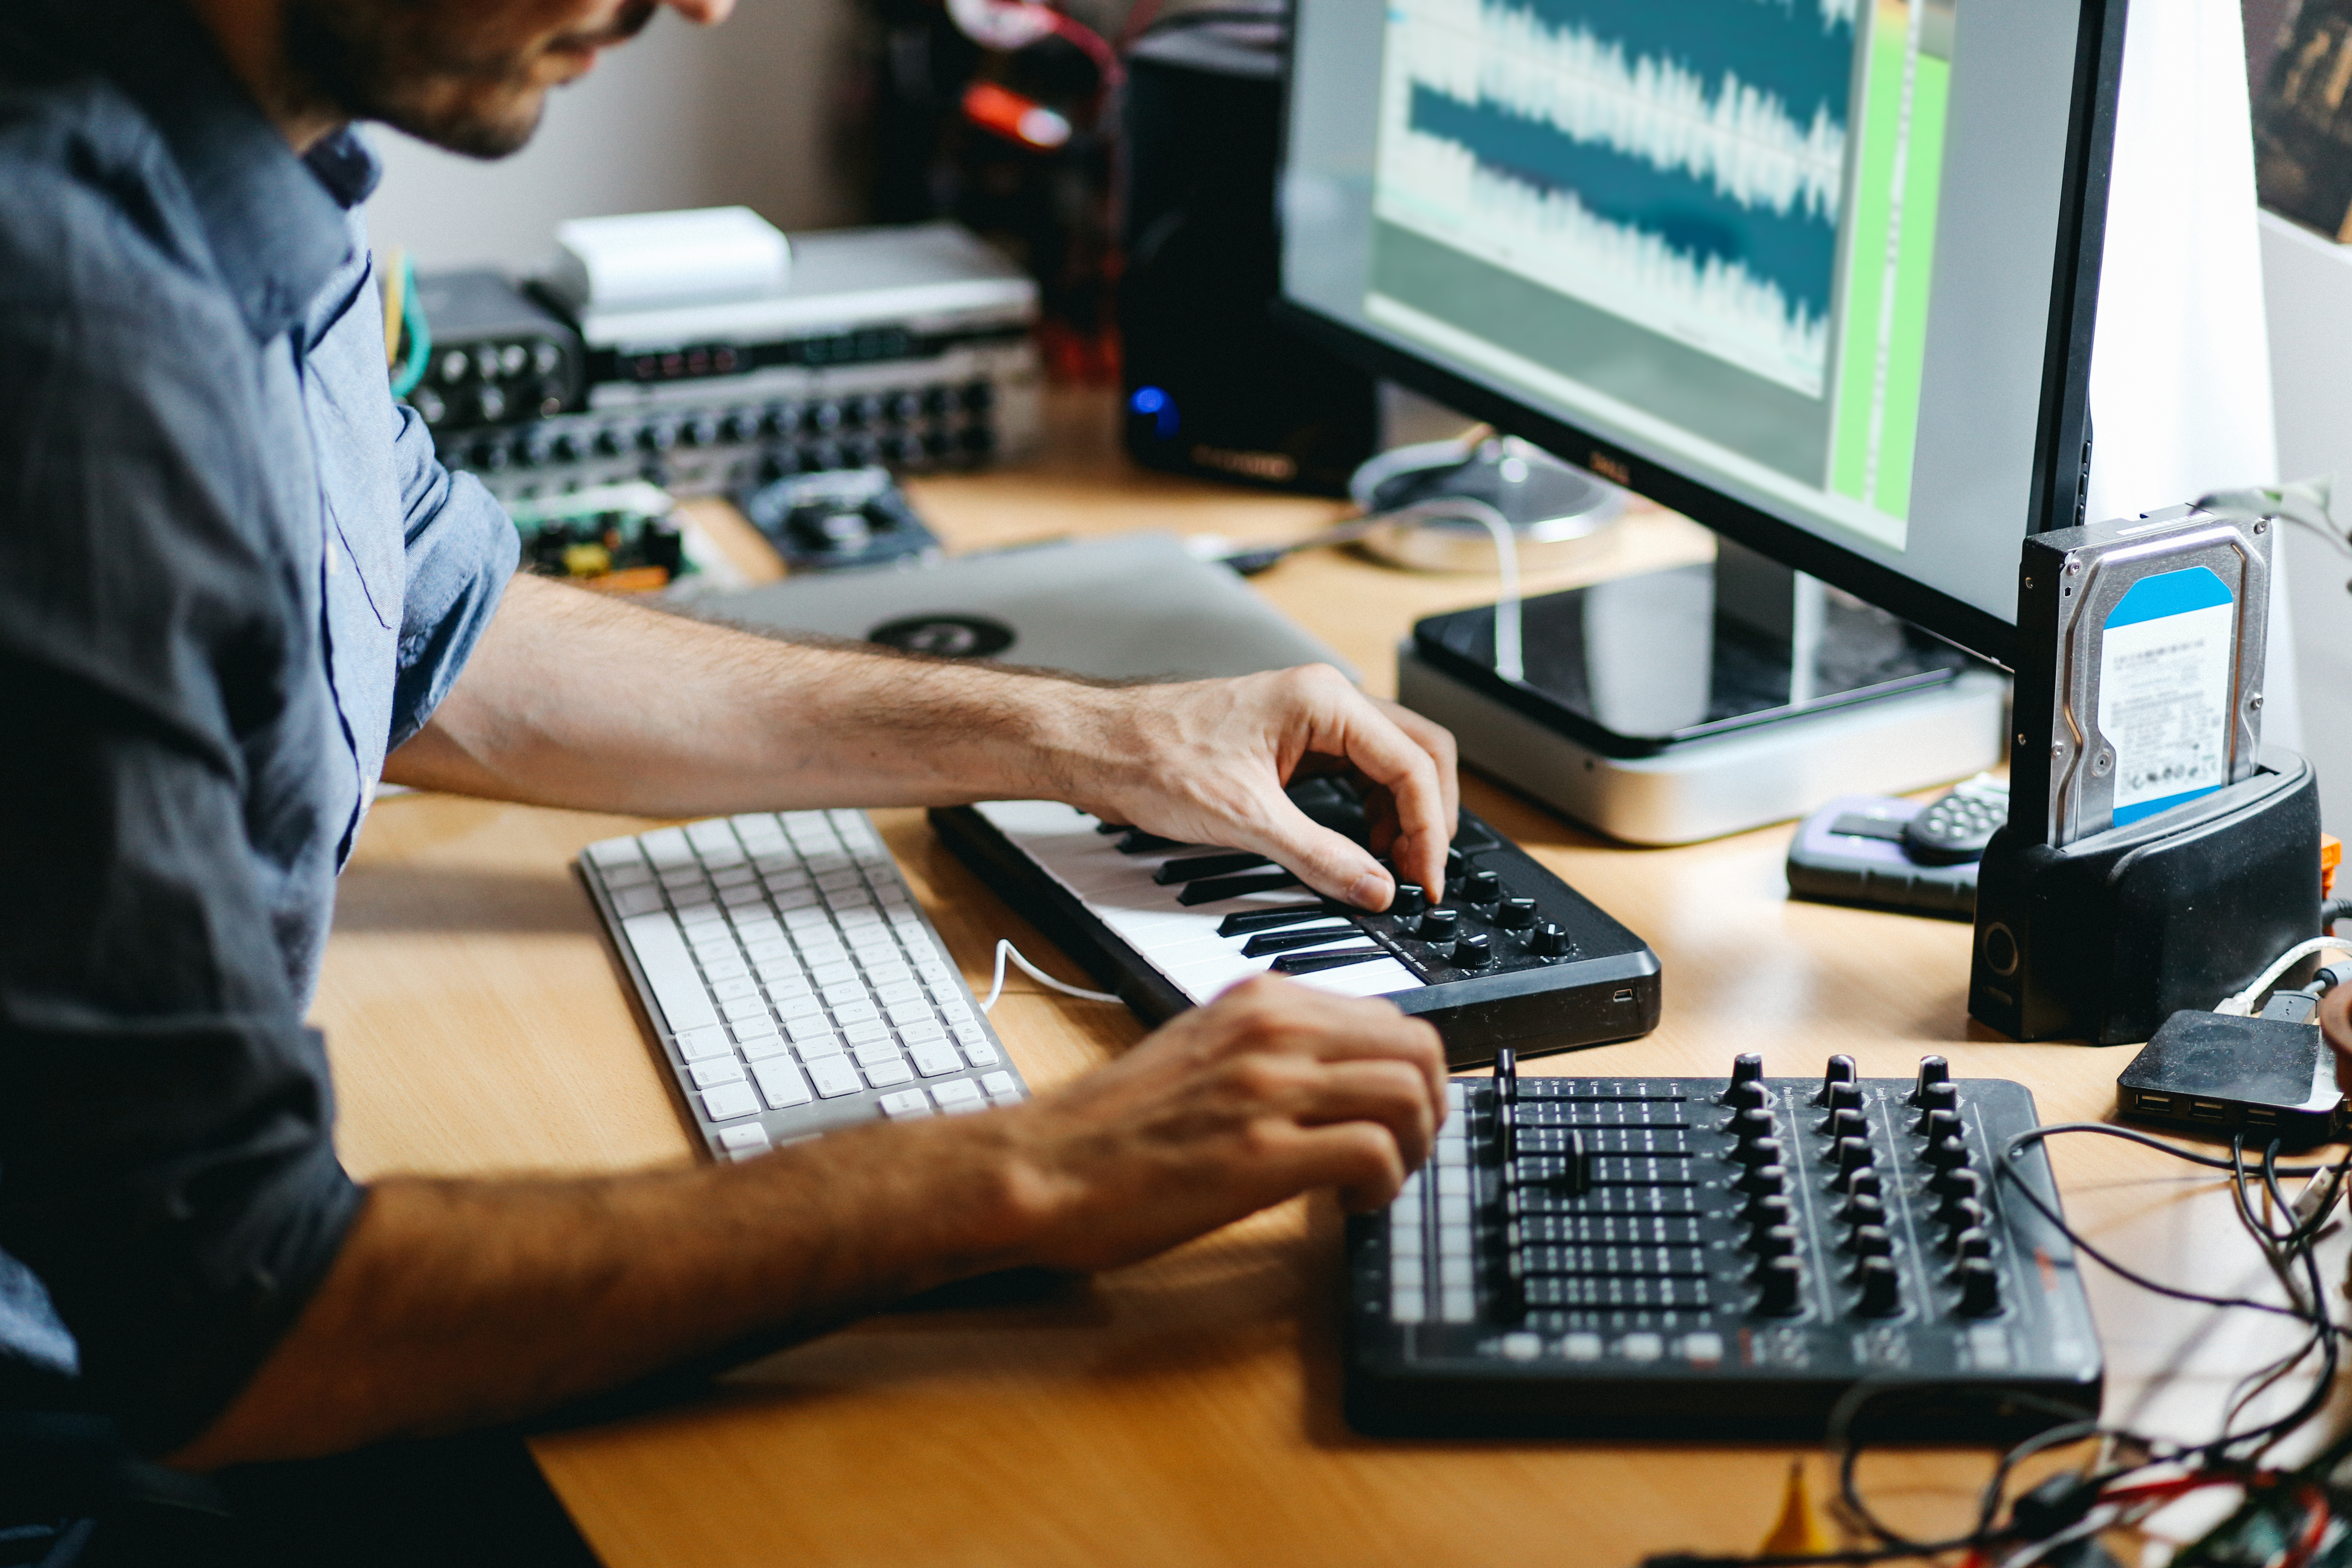 Home production - business or necessity